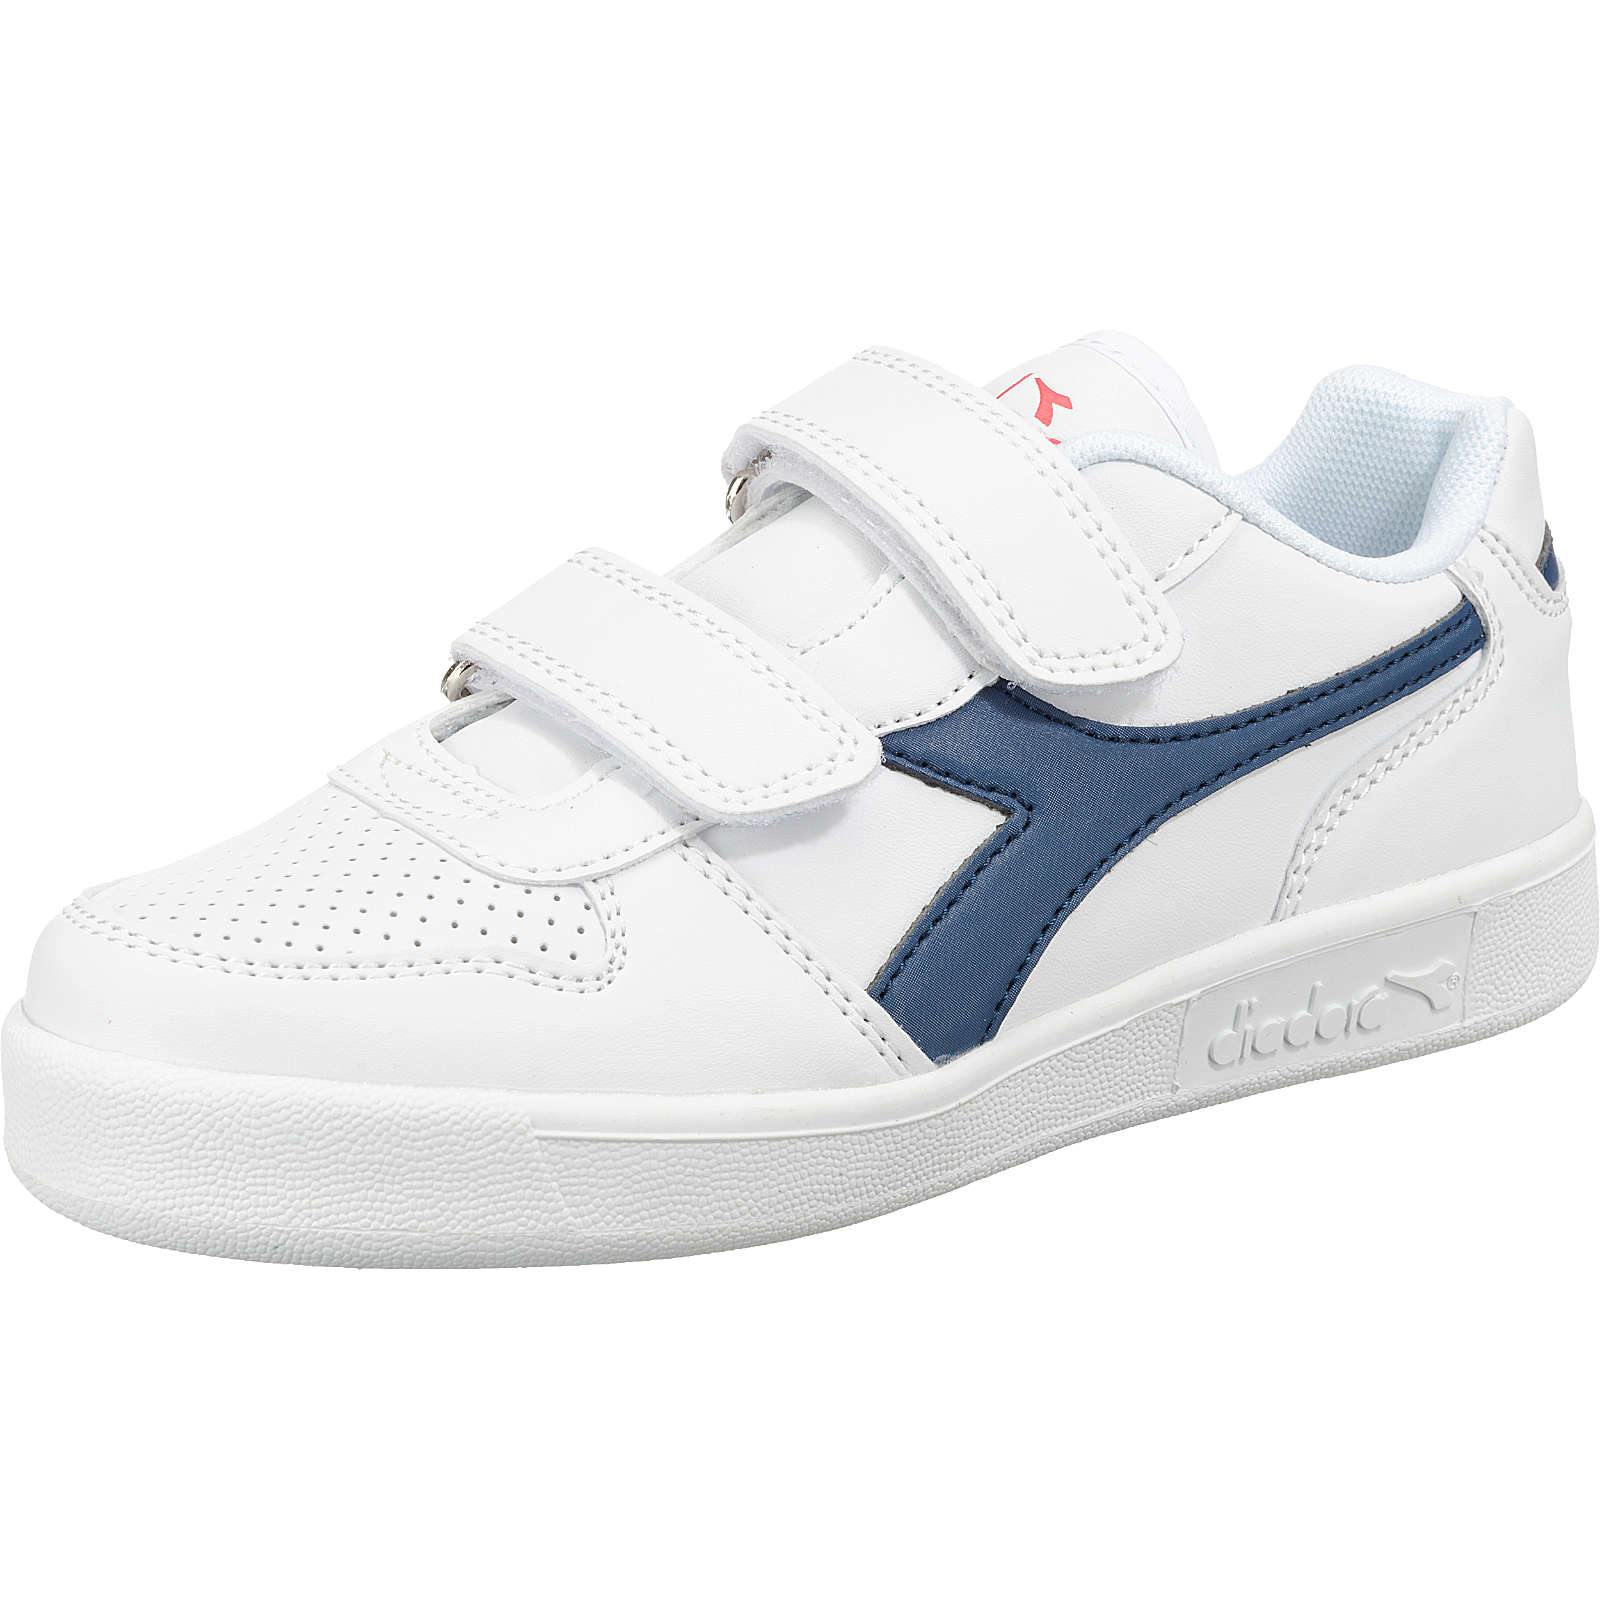 Diadora Kinder Sneakers Low PLAYGROUND PS weiß Junge Gr. 31